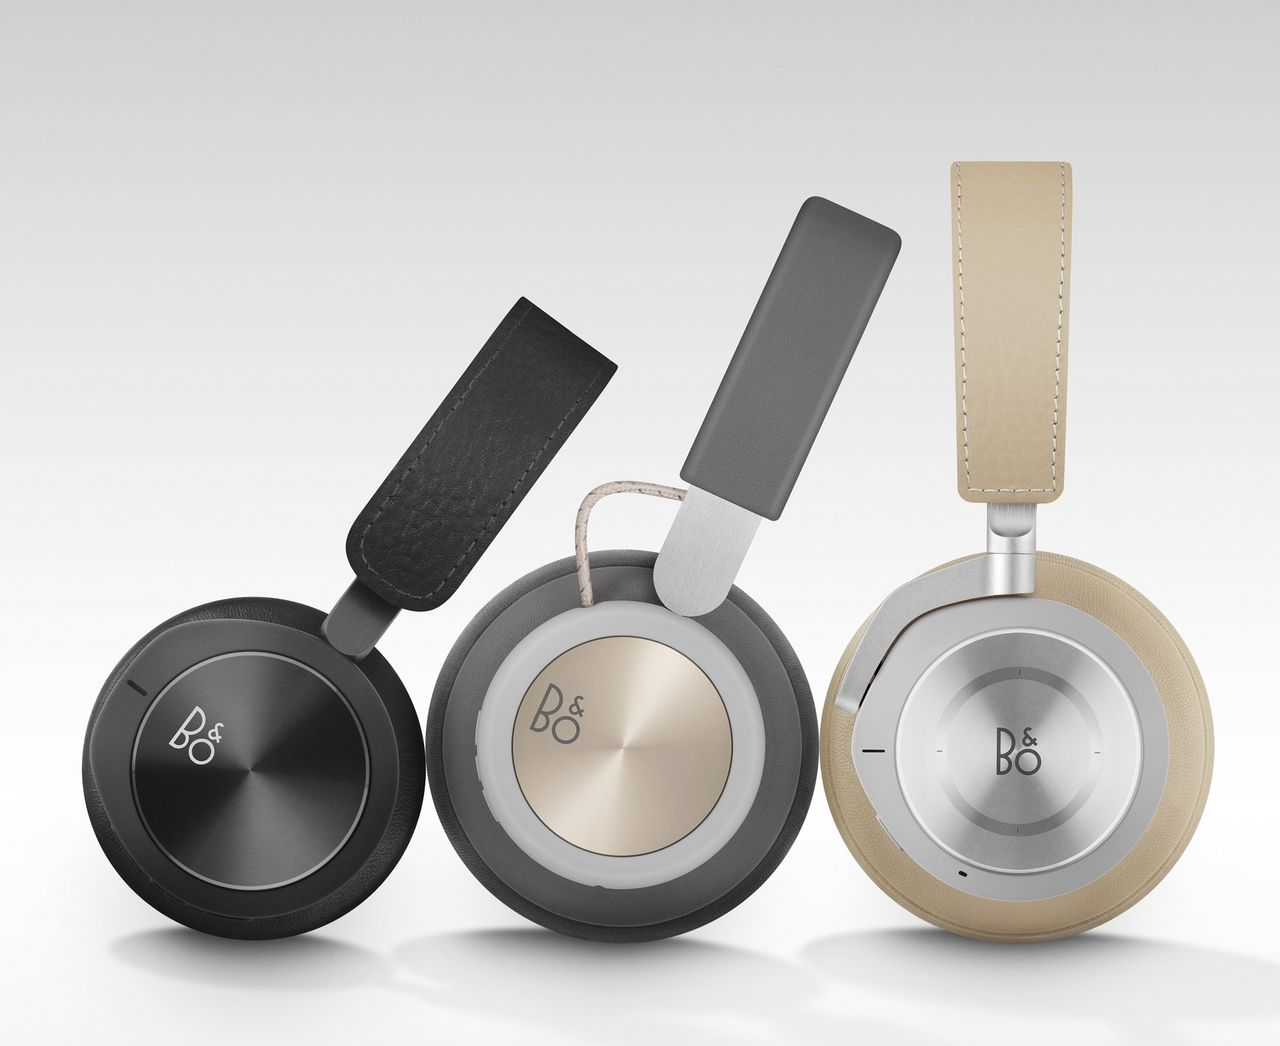 Beoplay presenterar H8i och H9i